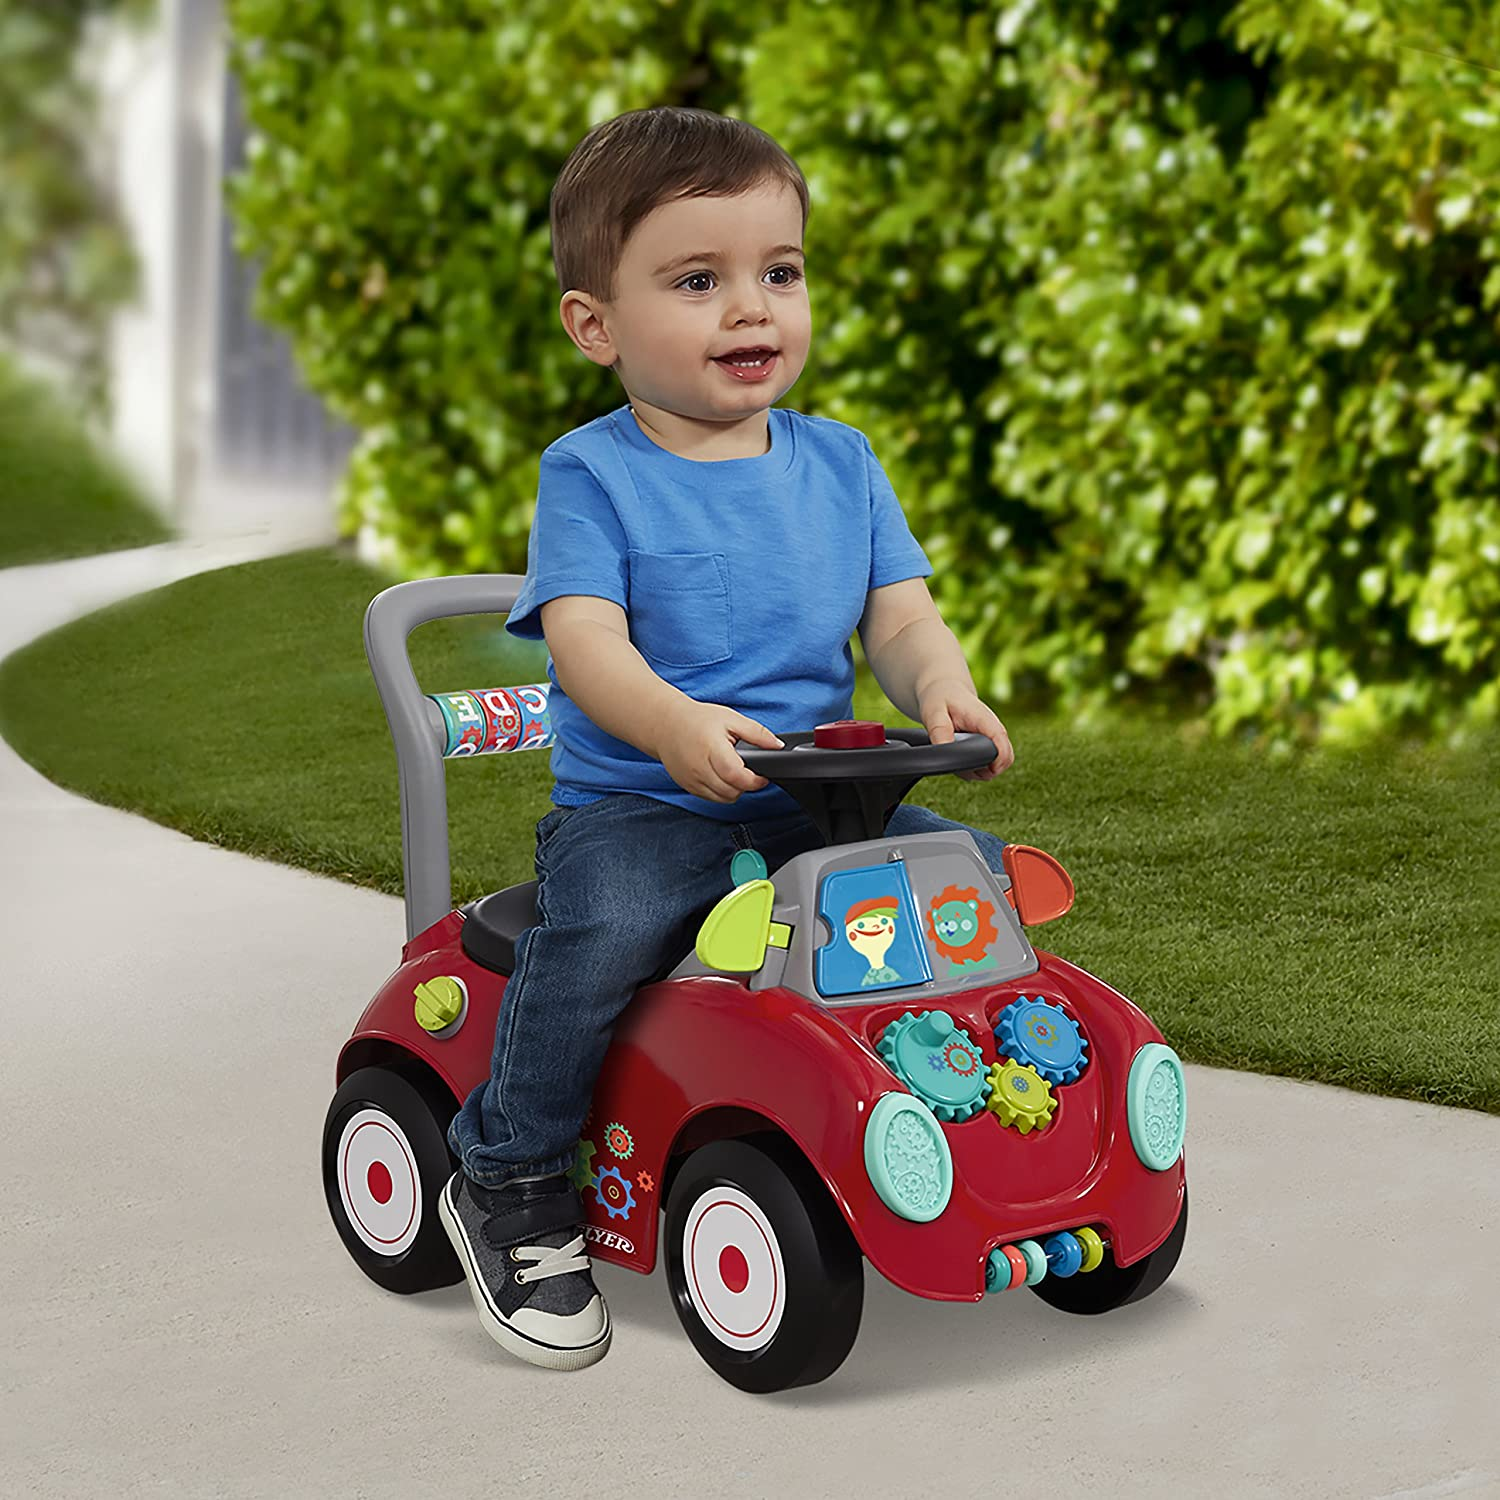 4ab9313809d Radio flyer busy buggy red toys games jpg 1500x1500 Radio flyer buggy